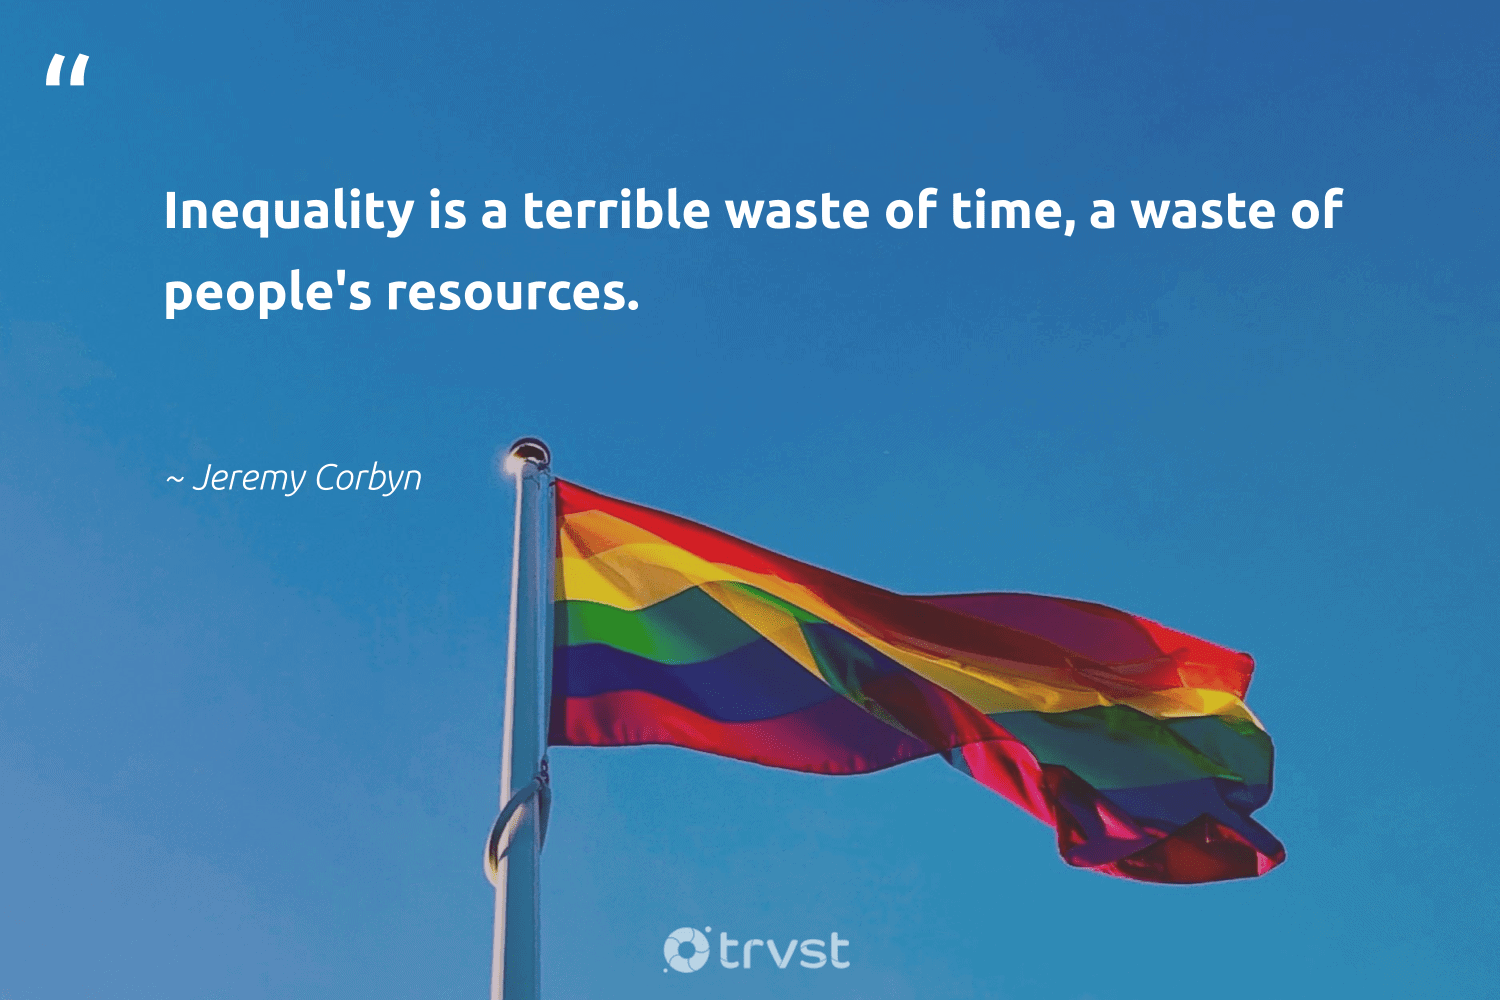 """Inequality is a terrible waste of time, a waste of people's resources.""  - Jeremy Corbyn #trvst #quotes #waste #giveback #collectiveaction #socialgood #beinspired #bethechange #socialchange #weareallone #changetheworld #makeadifference"